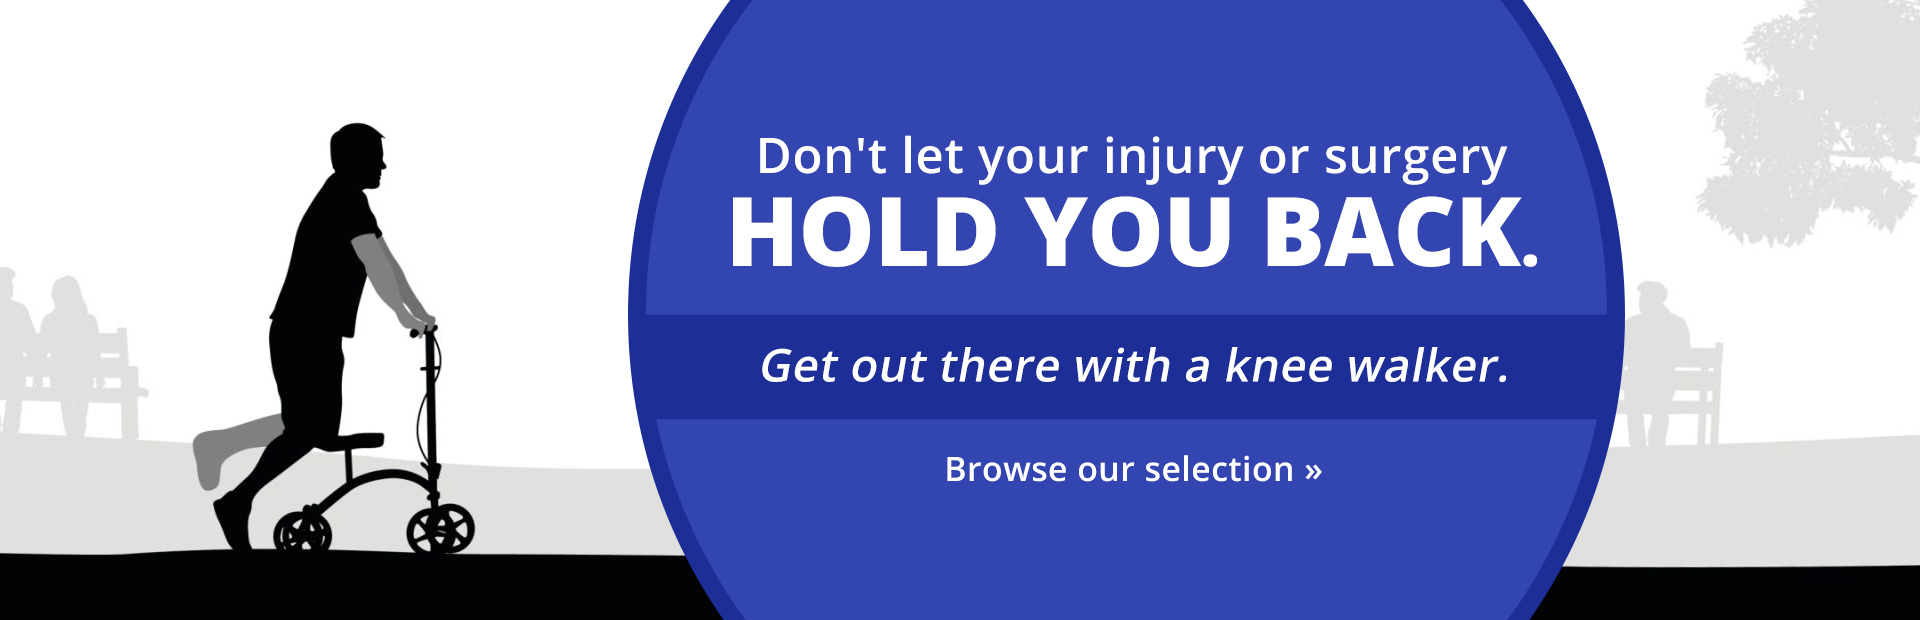 Browse our selection of knee walkers.